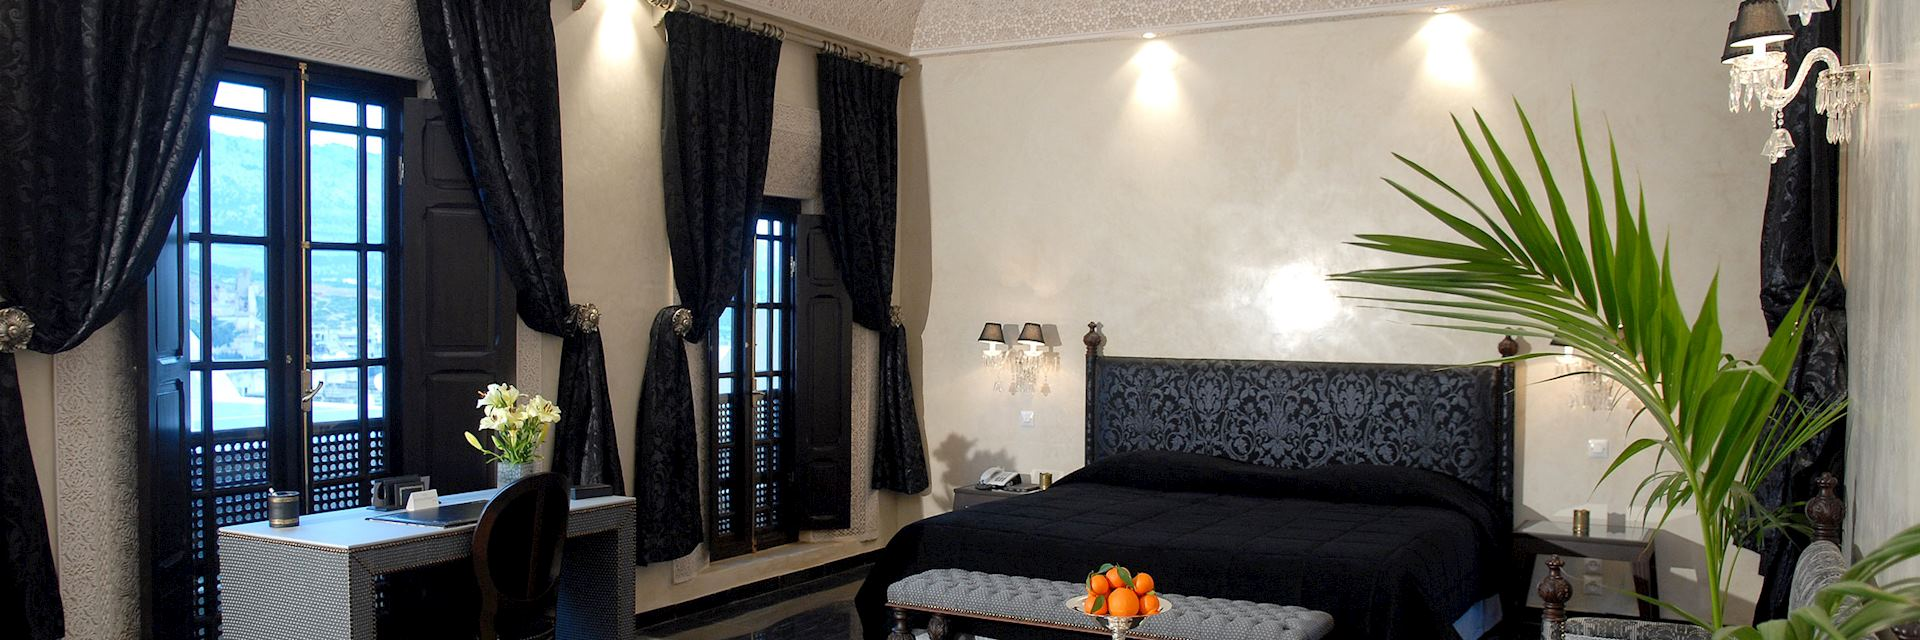 Suite at Riad Fes